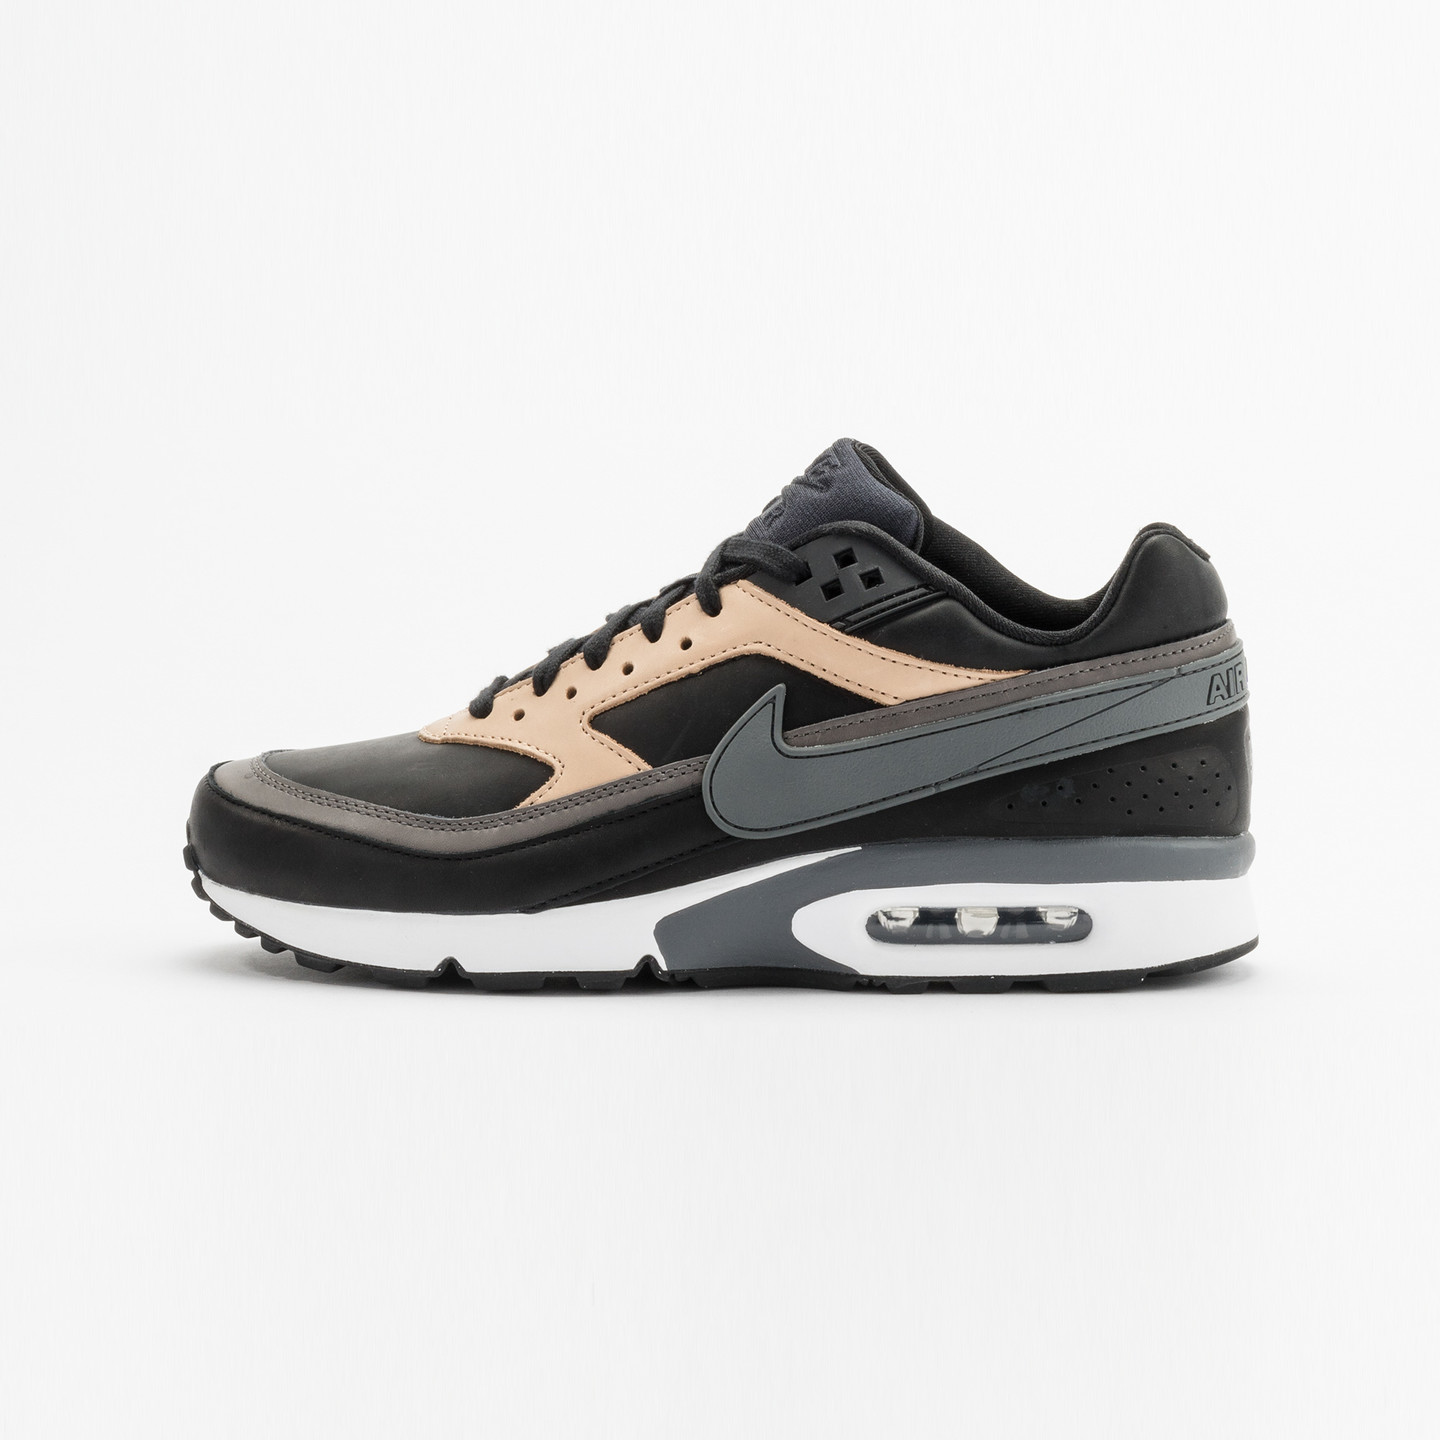 Nike Air Max BW Premium Leather Black / Dark Grey / Vachetta 819523-001-43